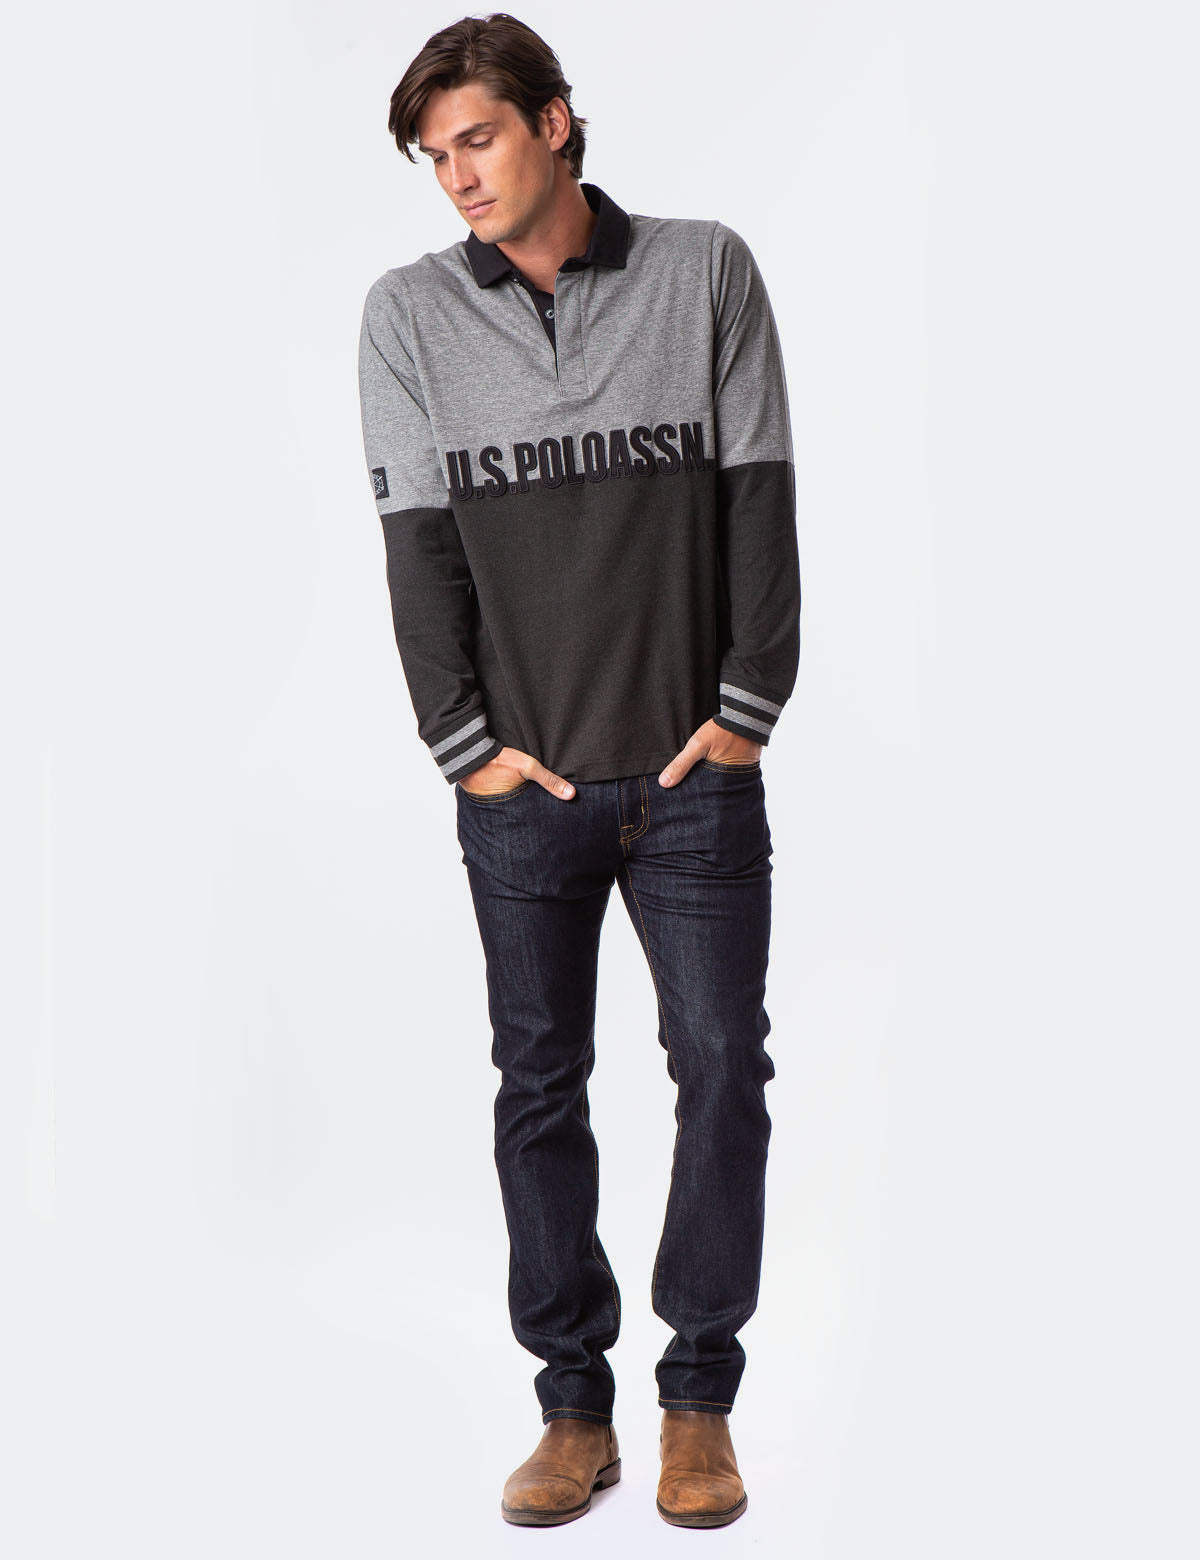 BLACK MALLET LONG SLEEVE RUGBY SHIRT - U.S. Polo Assn.